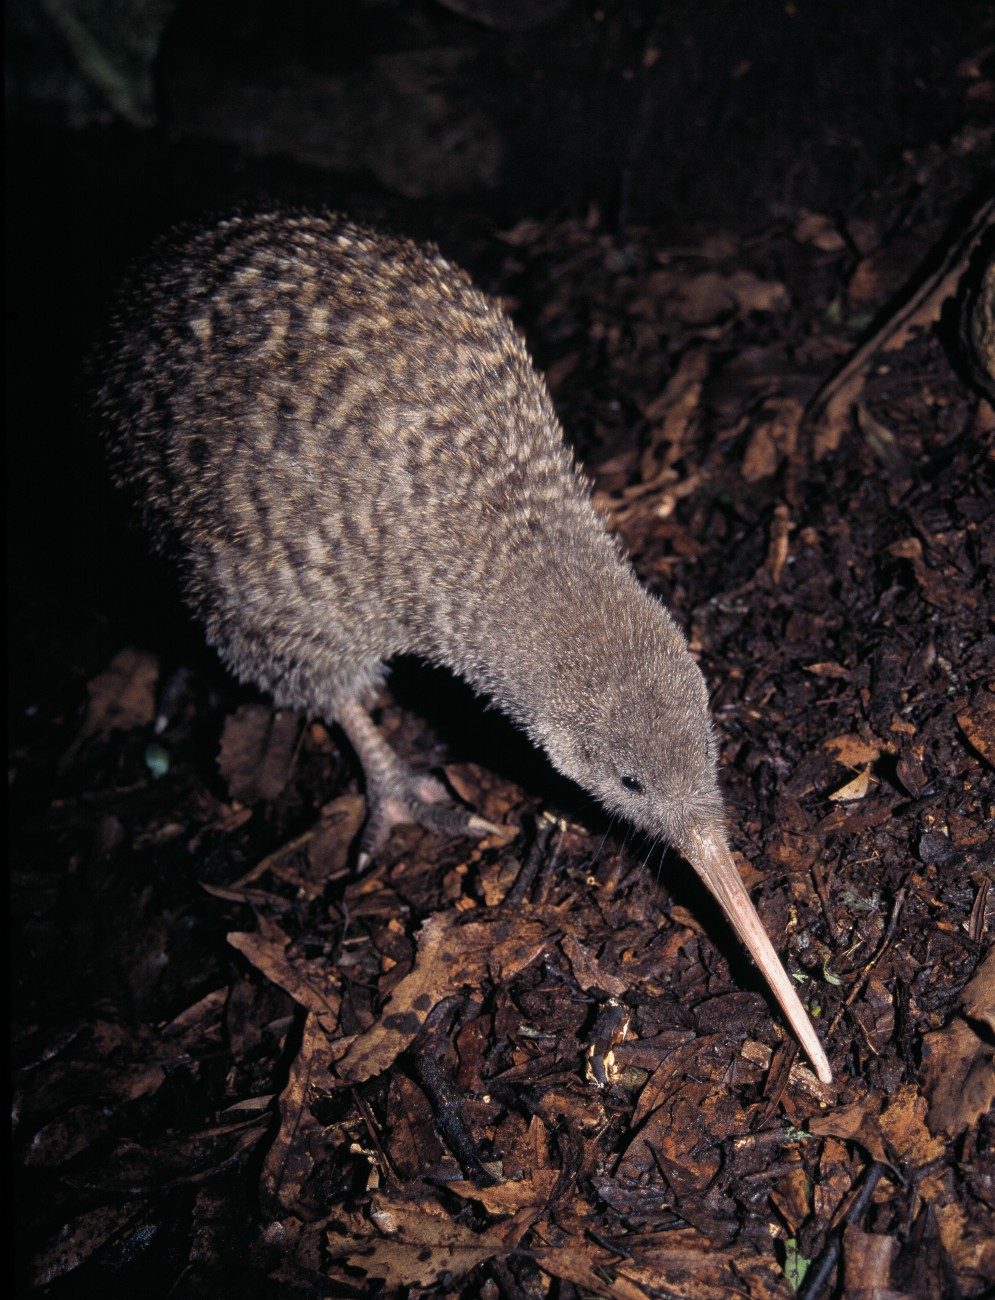 Great spotted kiwi are now found in the wetter coastal ranges of northern Westland and around the main divide north of Arthur's Pass.